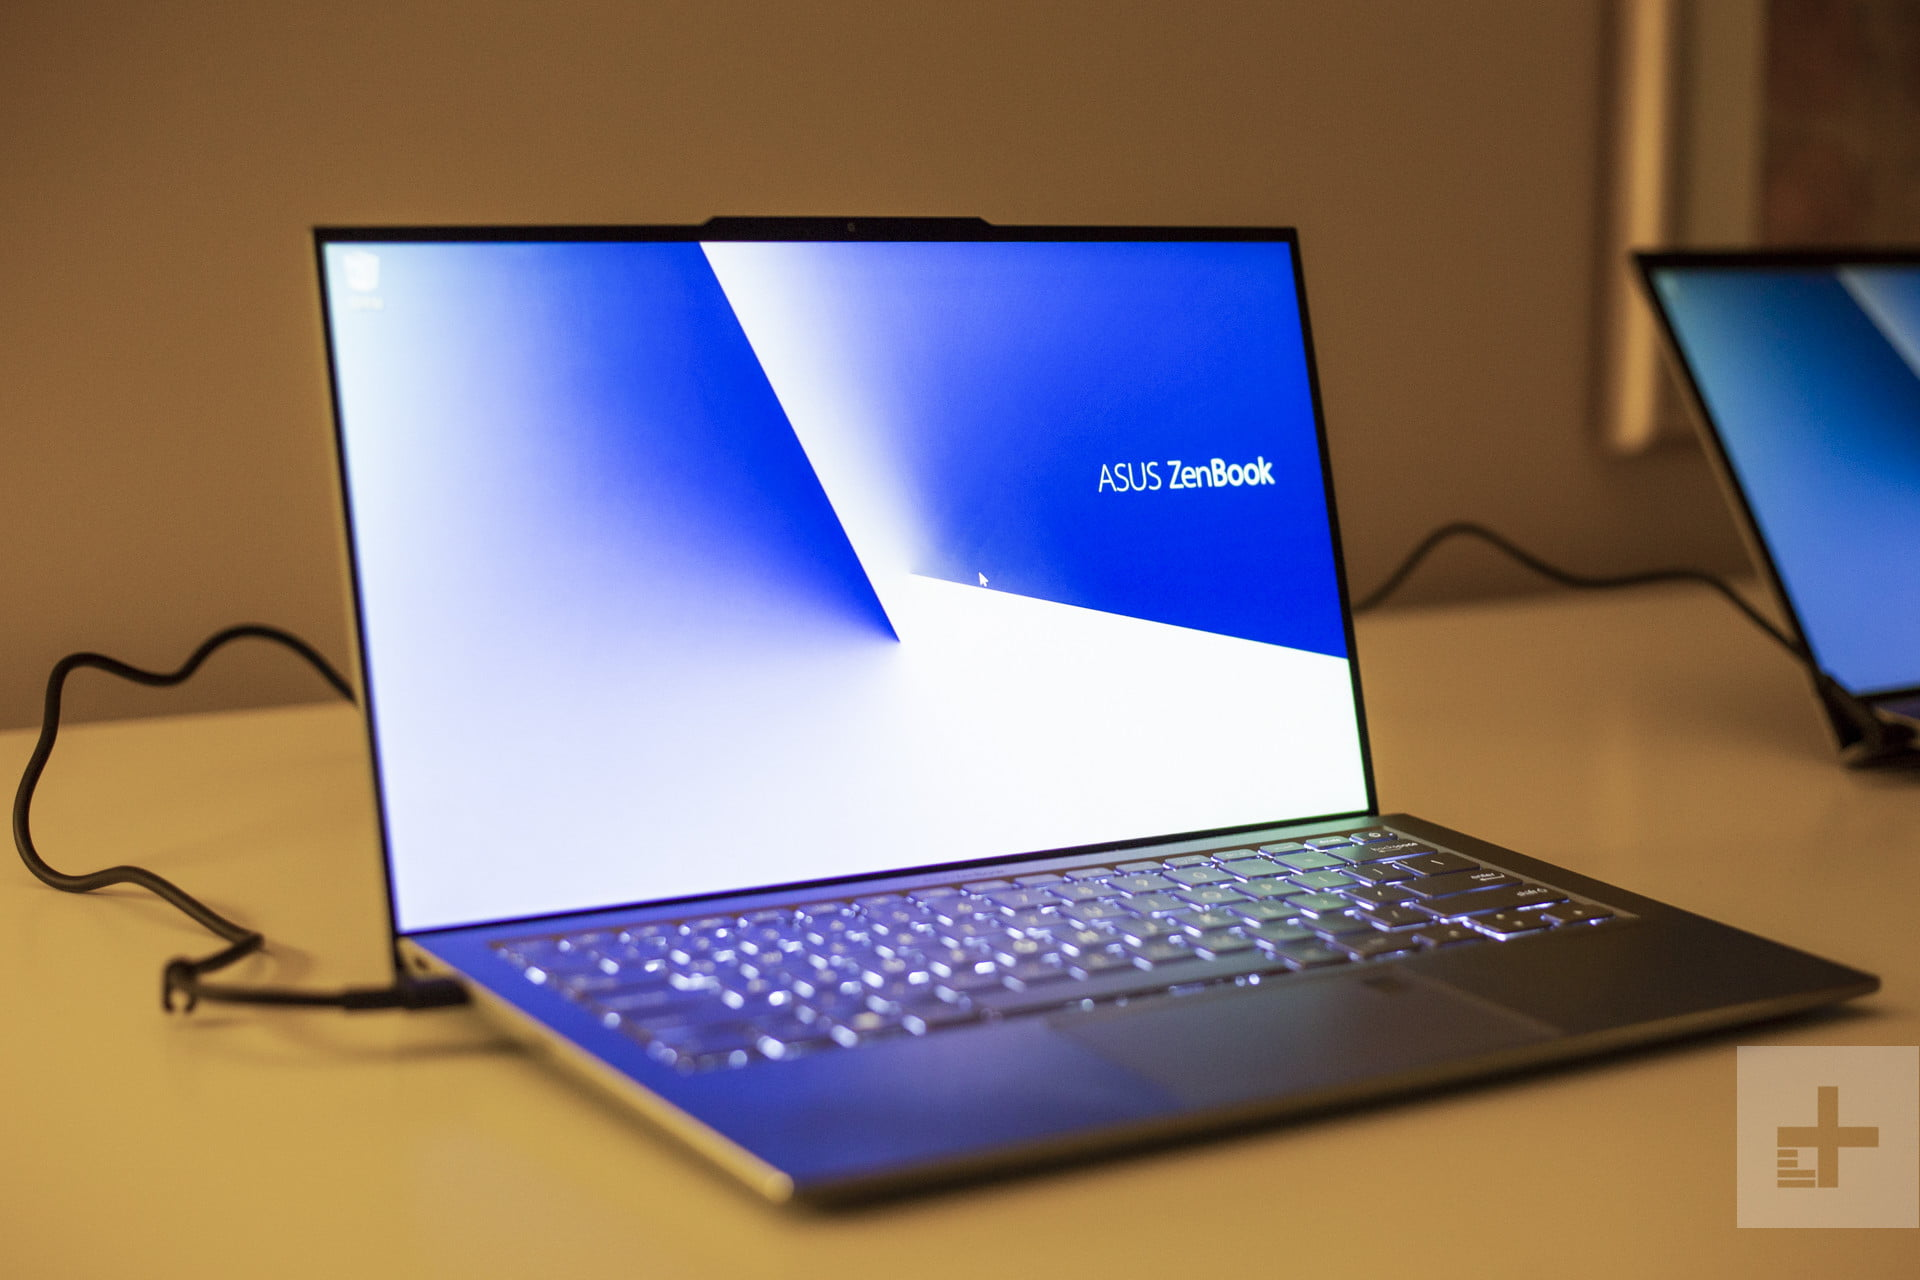 Best Laptop for Asus